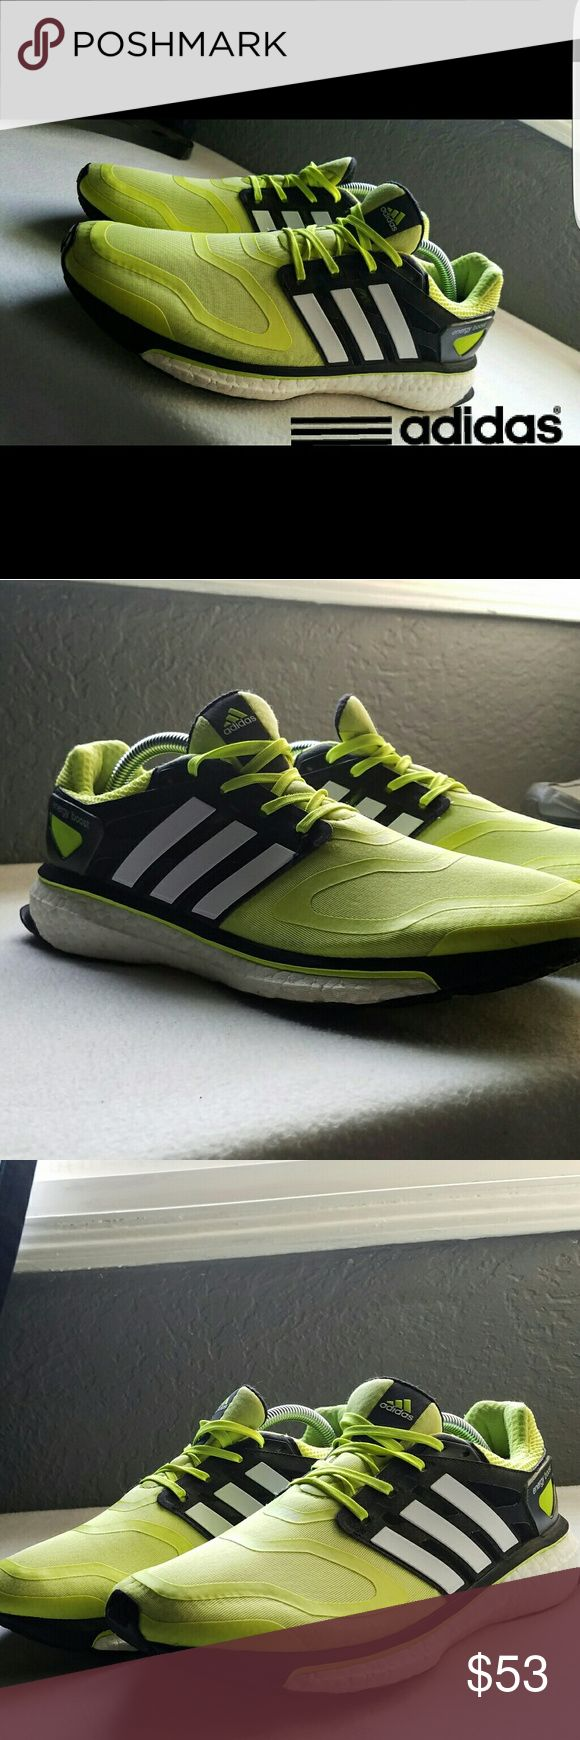 Adidas Energy Boost Hello, Selling a pair of Energy Boost Adidas, they are still in very nice conditions. No tears anywhere! Minor dirt along the front area but it should just wipe off. Adidas boost line are amazing and honestly one of the best shoes out right now. Making room in my closet, only reason im selling. Cheers adidas Shoes Athletic Shoes